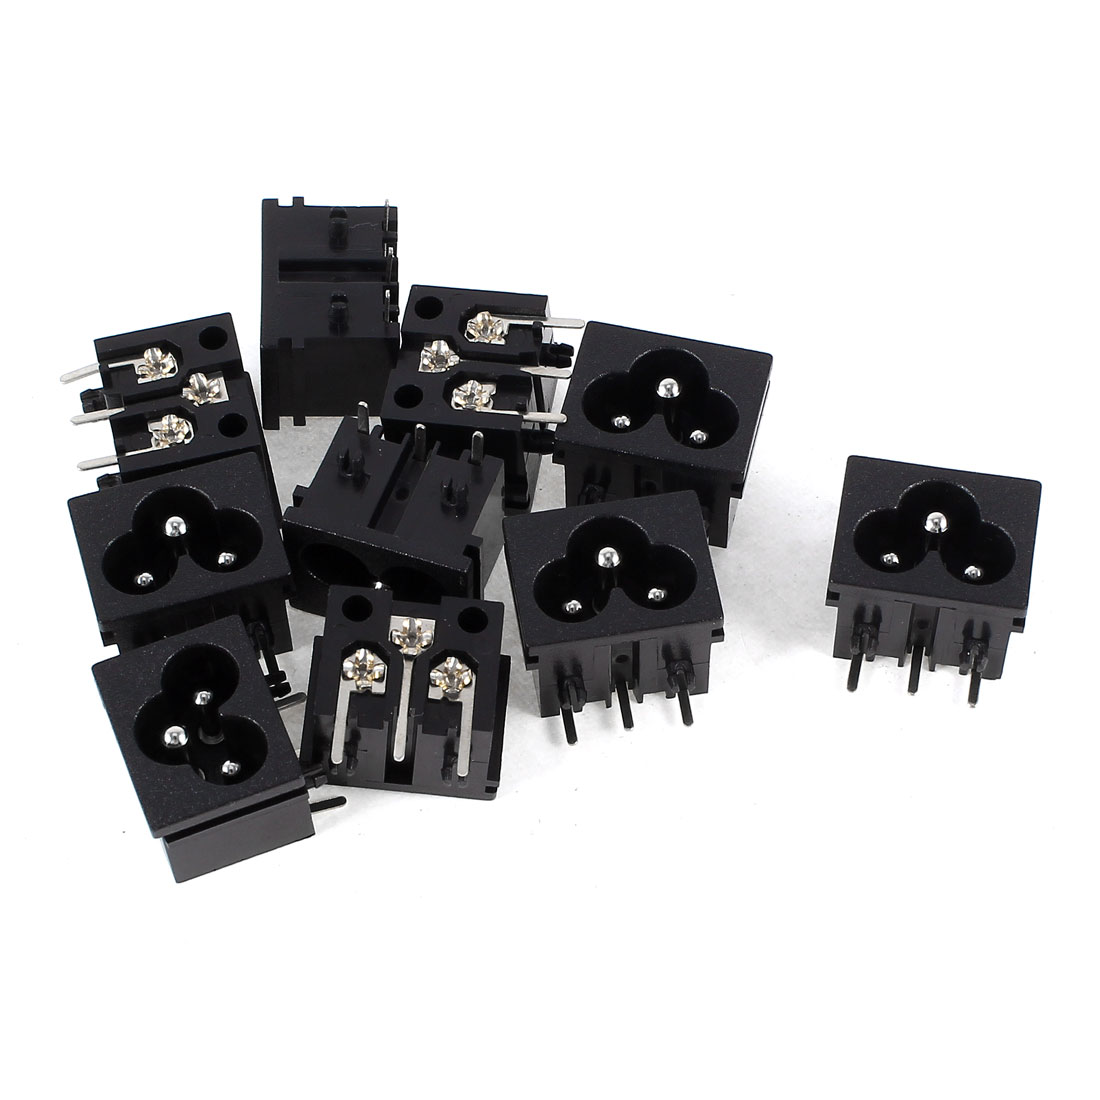 10 Pcs Black Plastic IEC320 Inlet C6 Power Adapter AC 250V/125V 2.5A/7A